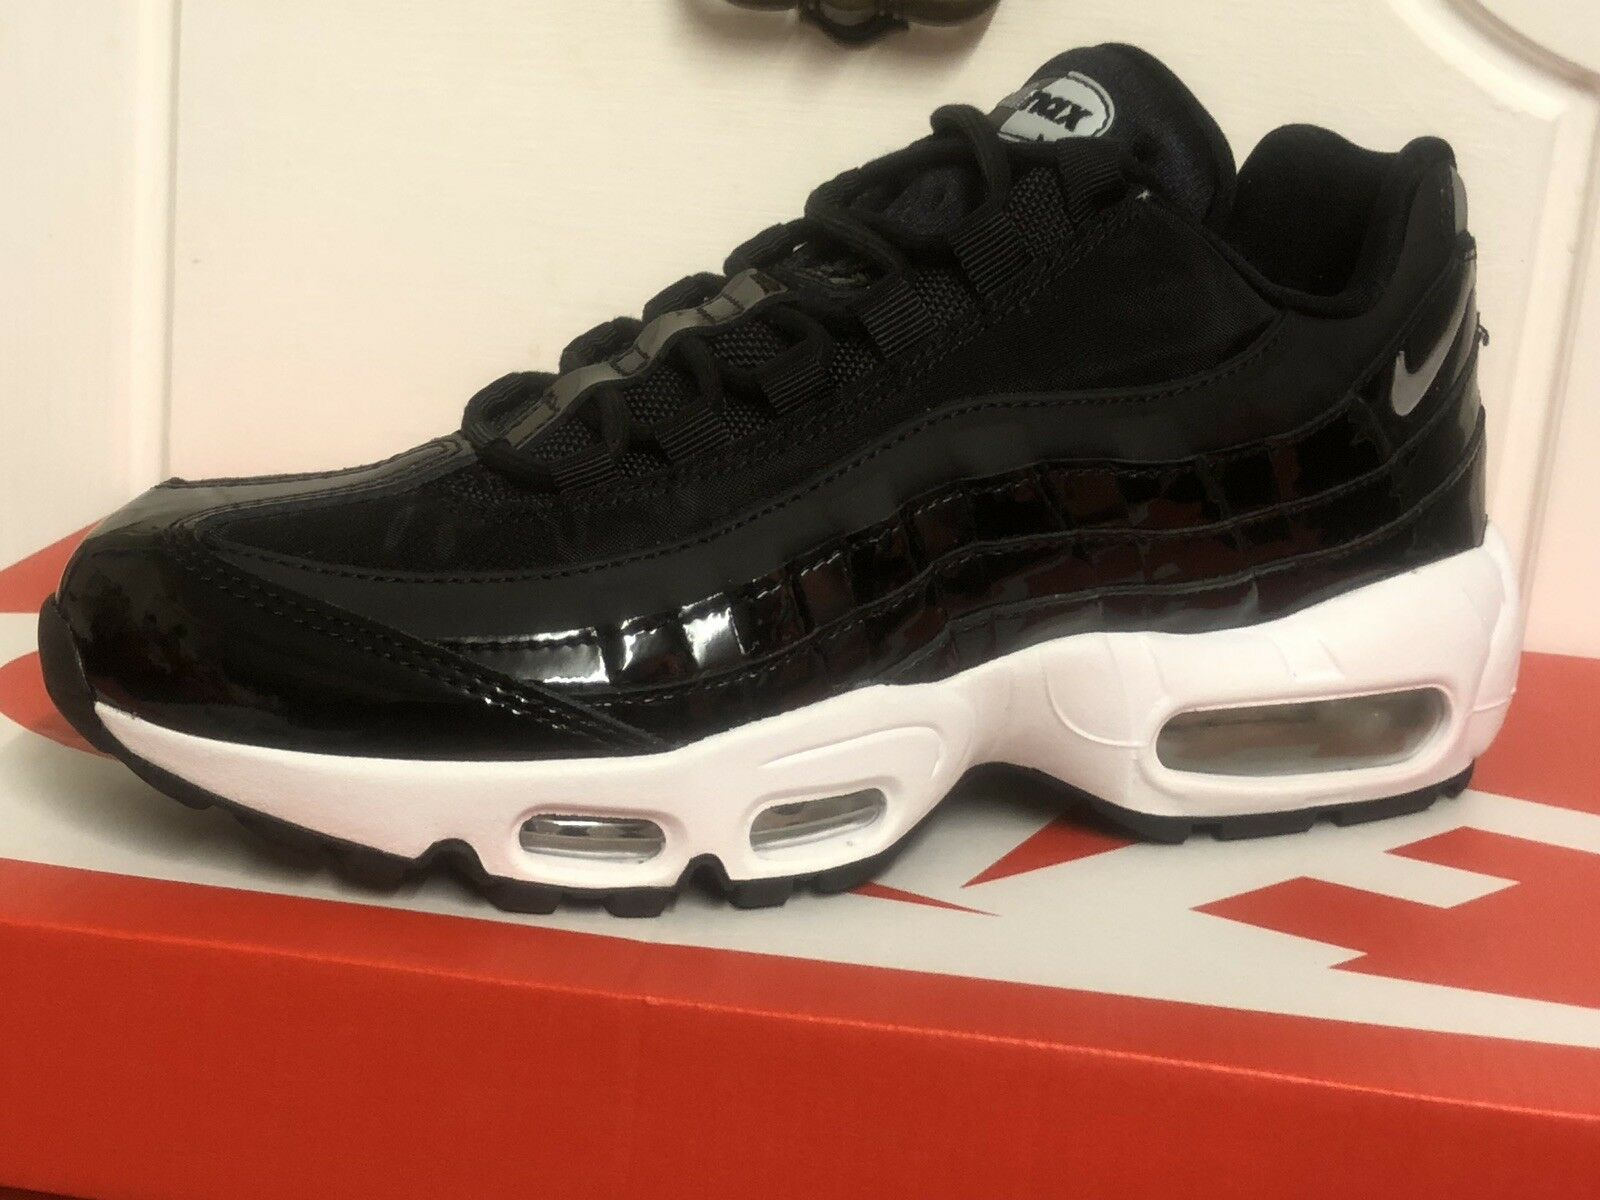 factory authentic 72737 8960e ... Nike Nike Nike Air Max 95 SE PRM Wo Trainers Baskets Chaussures Eur 39  US 8 ...